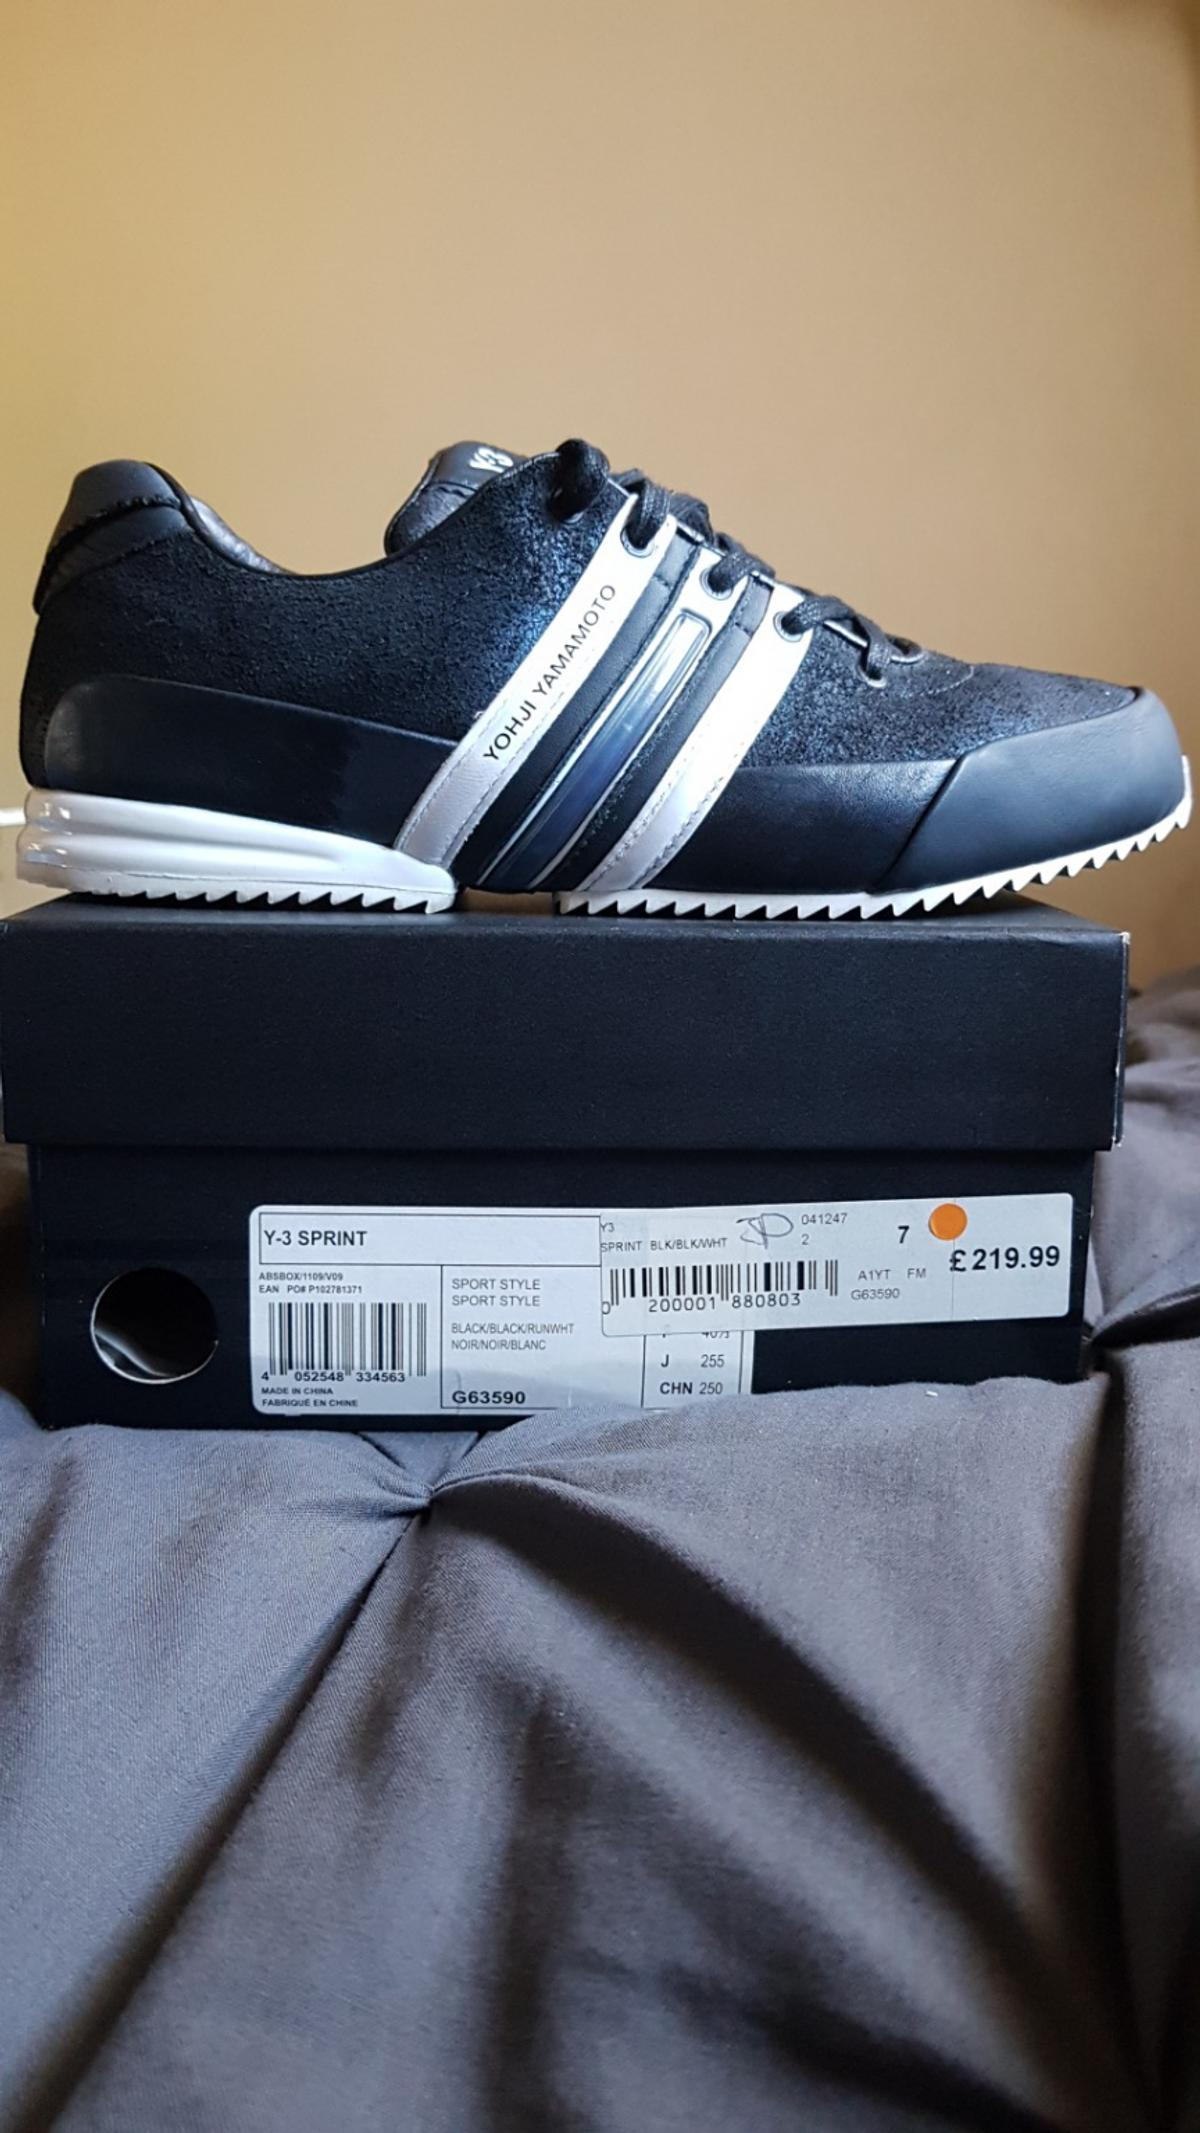 Adidas Y3 Sprint in PR1 Preston for £150.00 for sale | Shpock